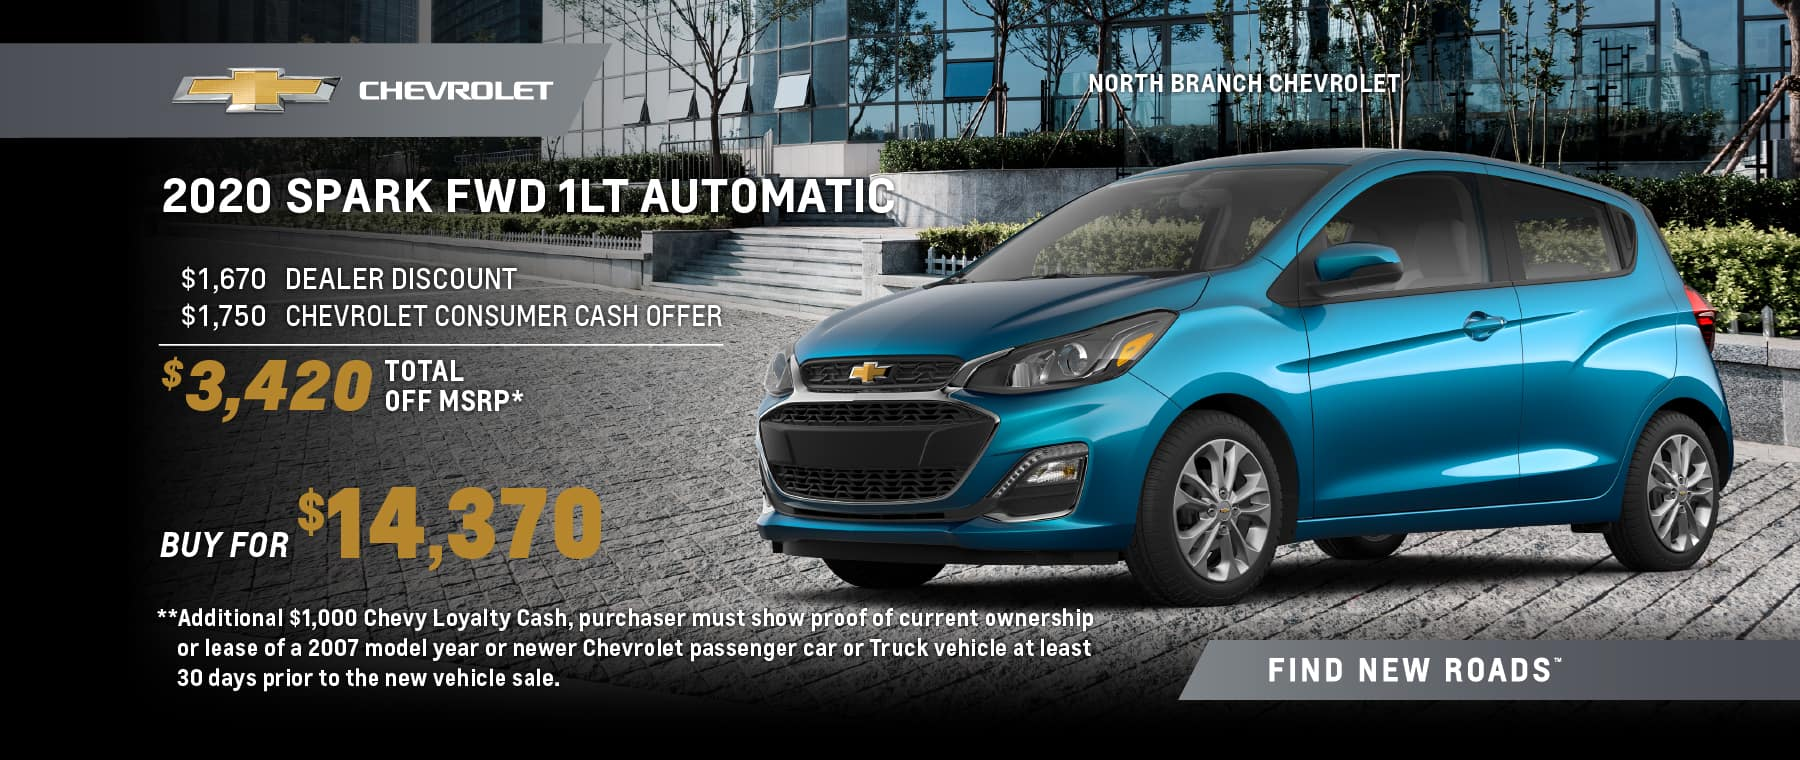 2020 CHEVROLET SPARK 1LT FWD AUTOMATIC